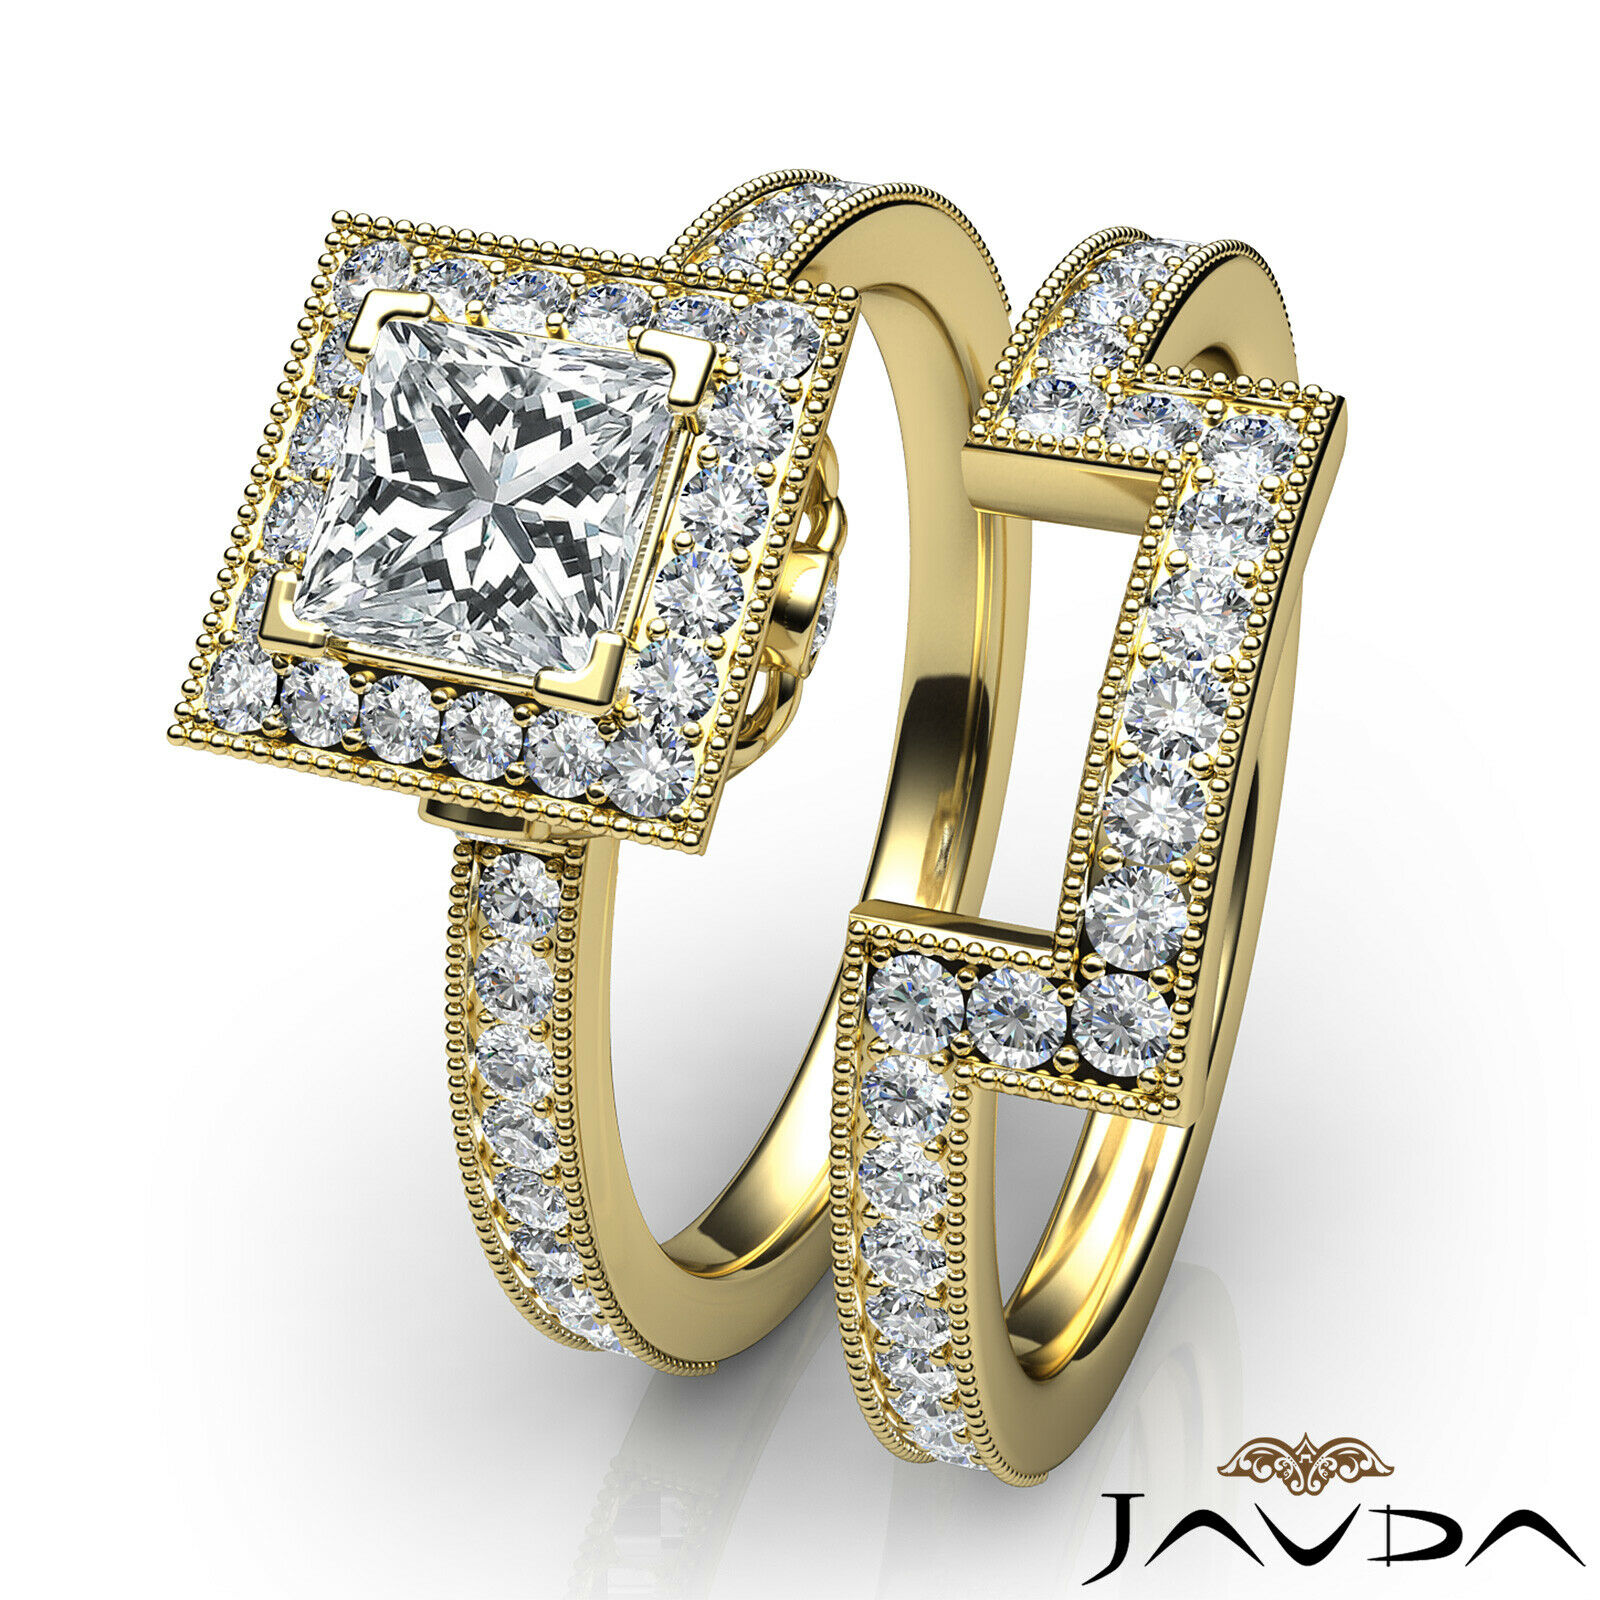 1.9ct Milgrain Edge Bridal Set Princess Diamond Engagement Ring GIA F-VS2 W Gold 10